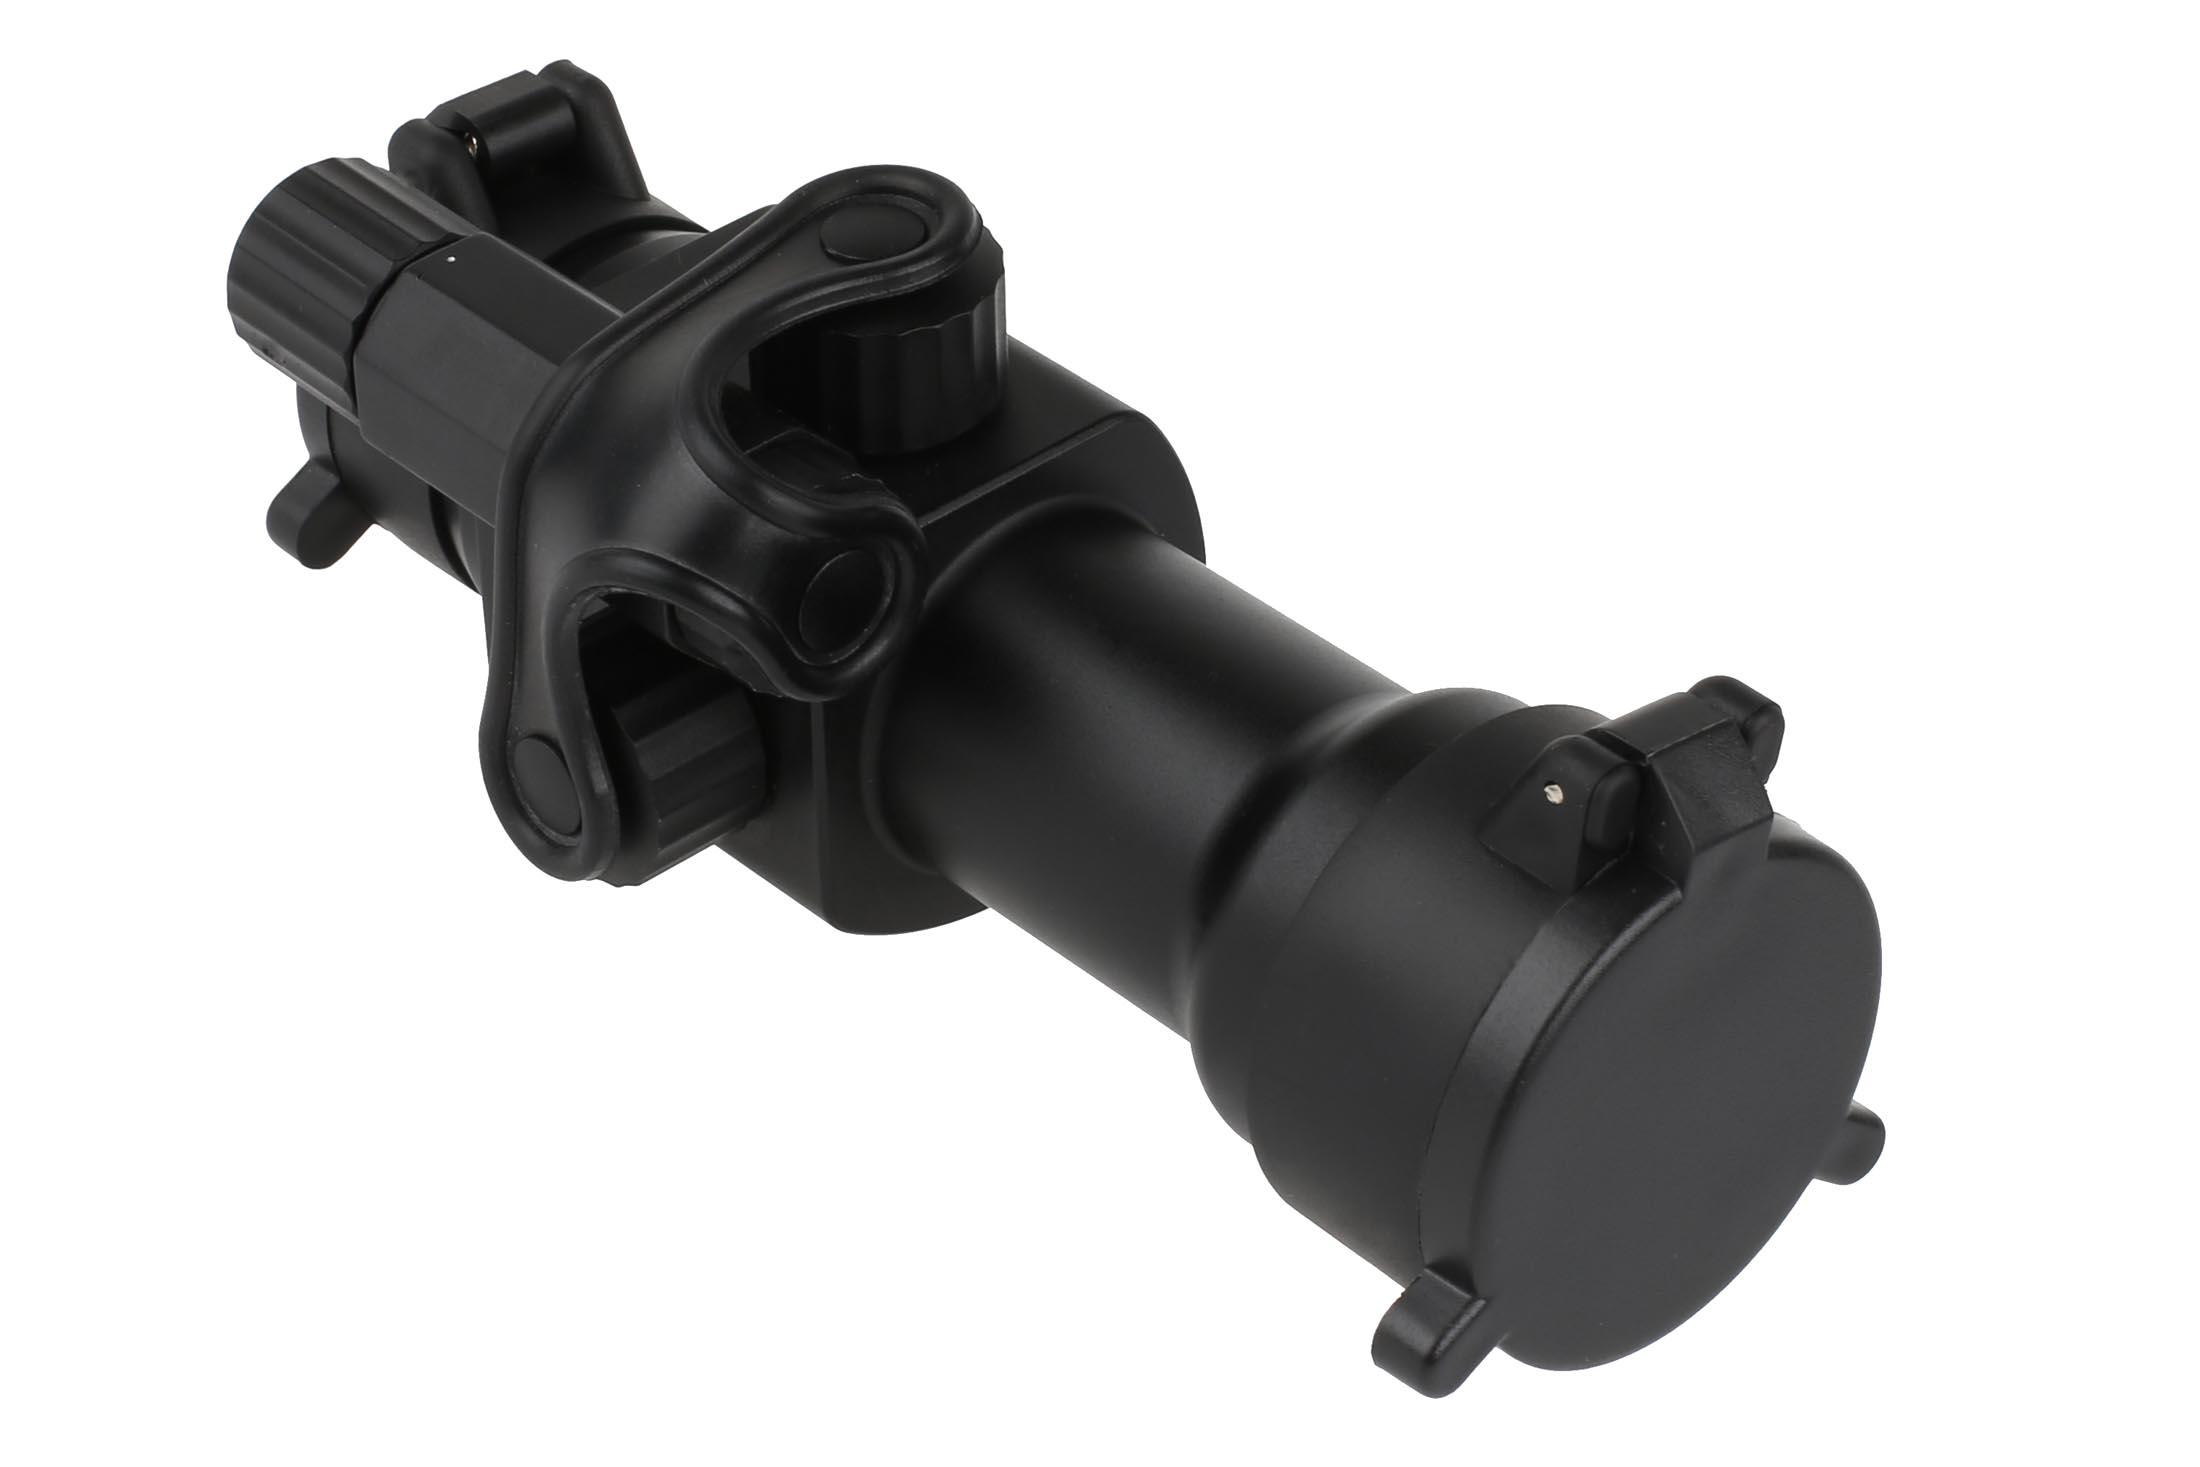 The Primary Arms Advanced 30mm AR15 red dot sight features a 2 moa dot